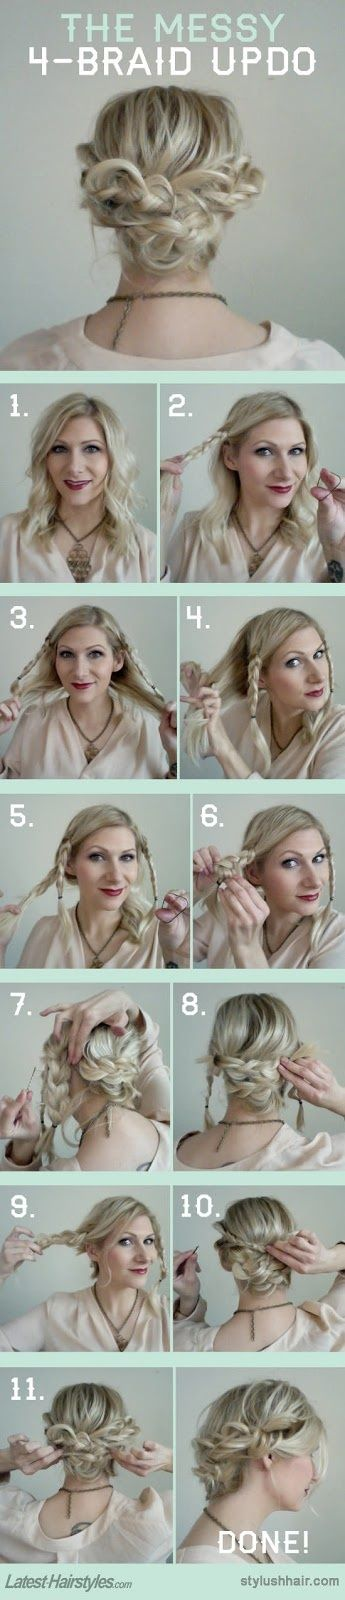 Easy Braid Updo on Confessions of a Hairstylist. ... | elfsacks